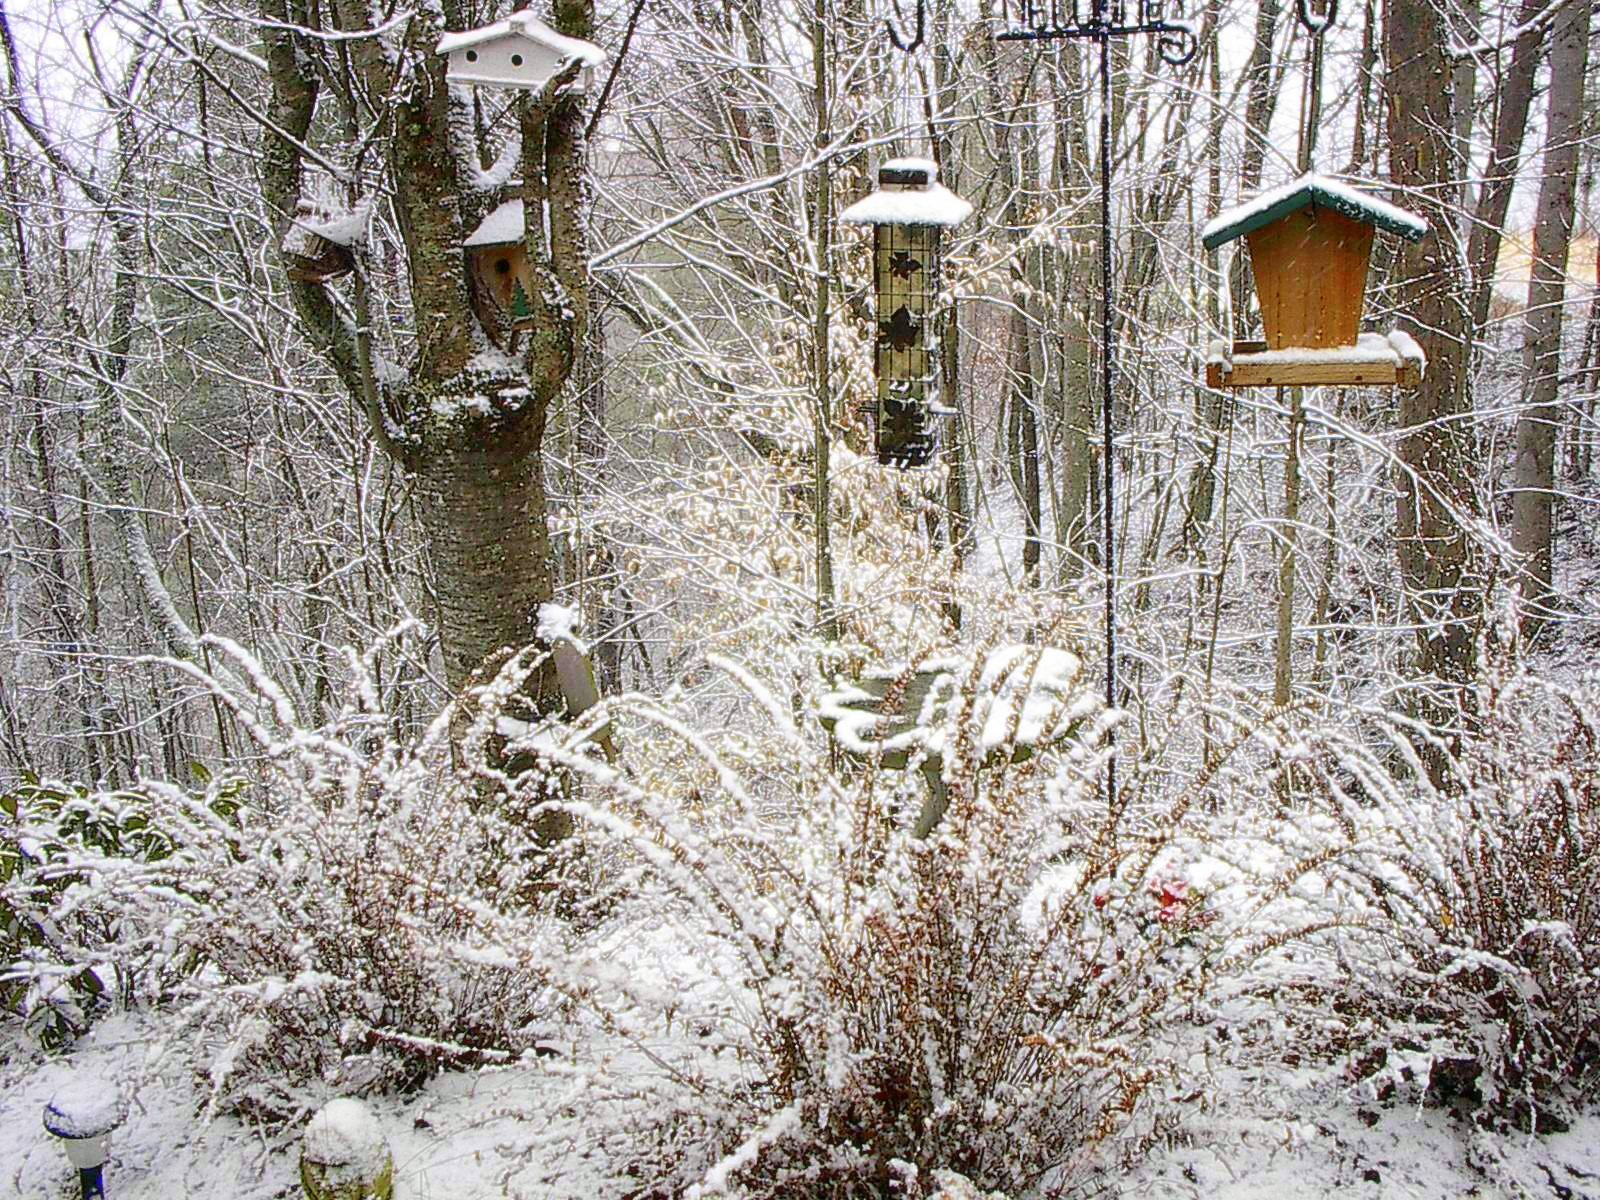 snow on bird houses